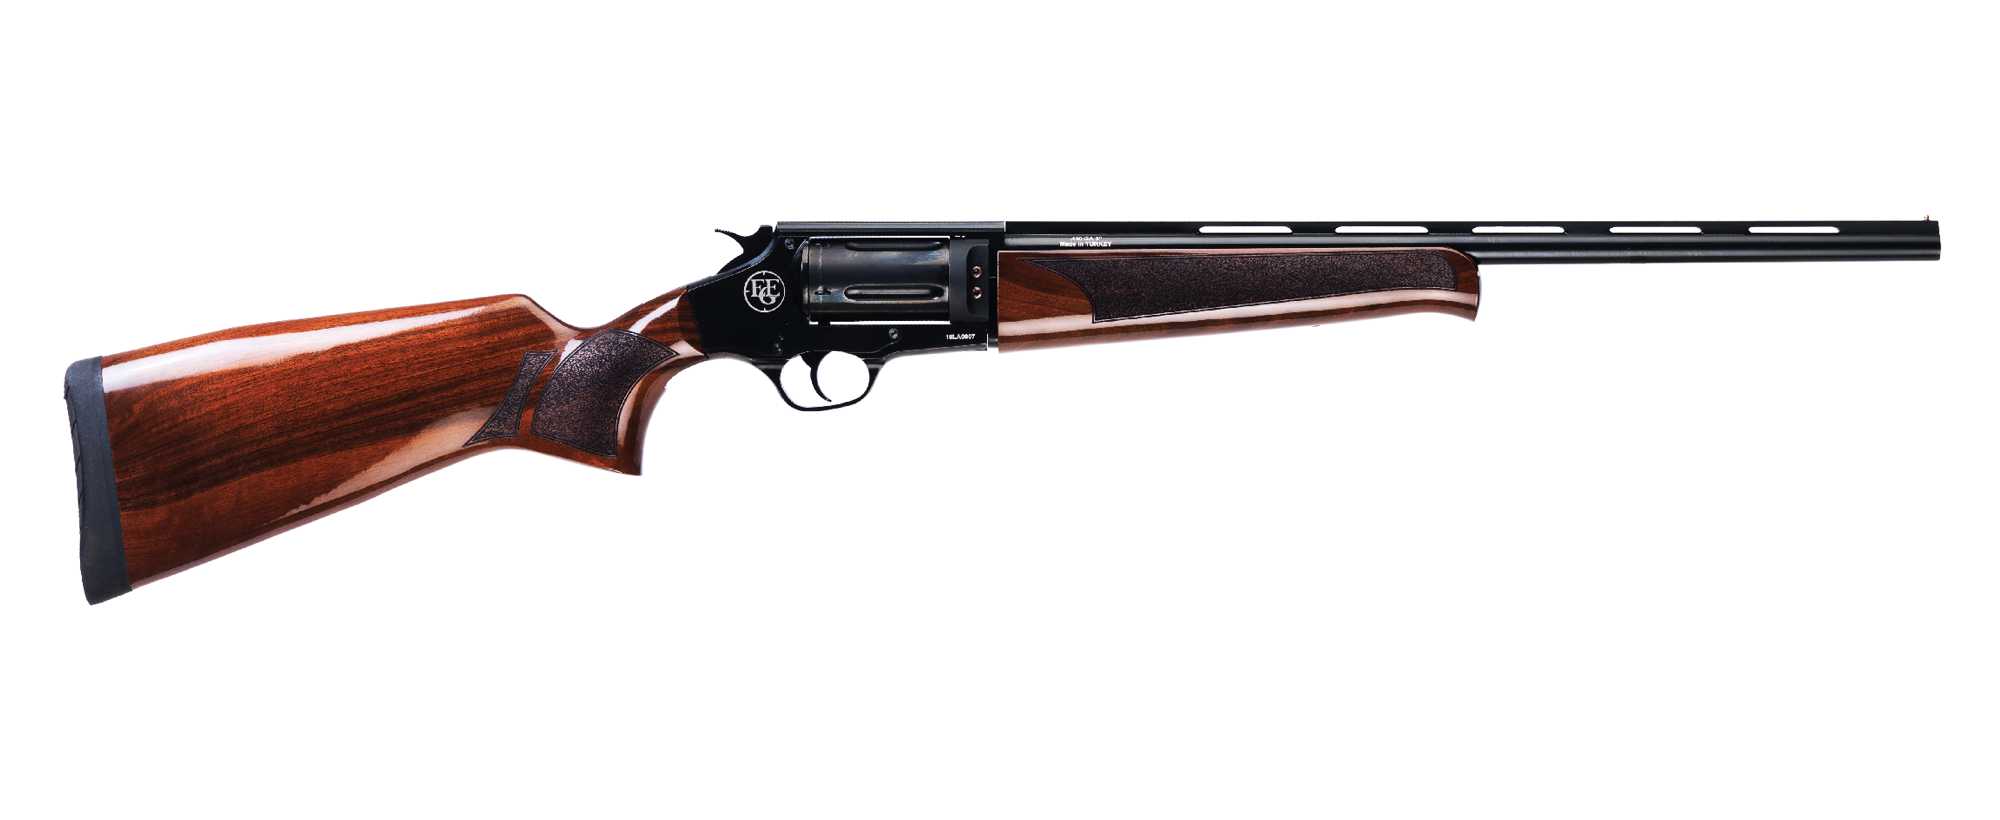 "E 25 WALNUT .410 CAL. / 3"" - 76 mm"